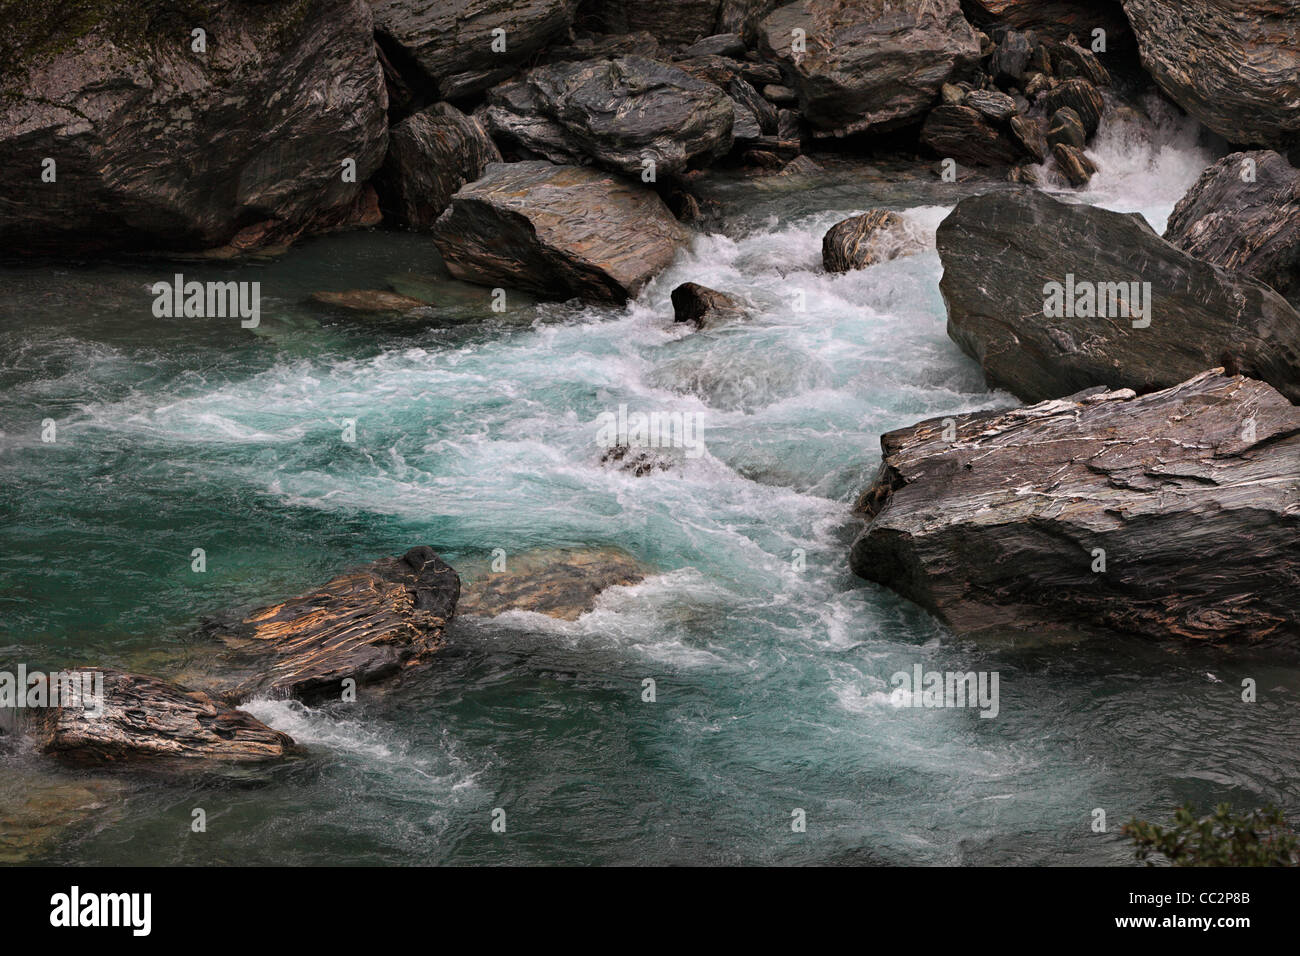 Rapids on the Makarora River near the Gates of Haast in Haast Pass, New Zealand - Stock Image